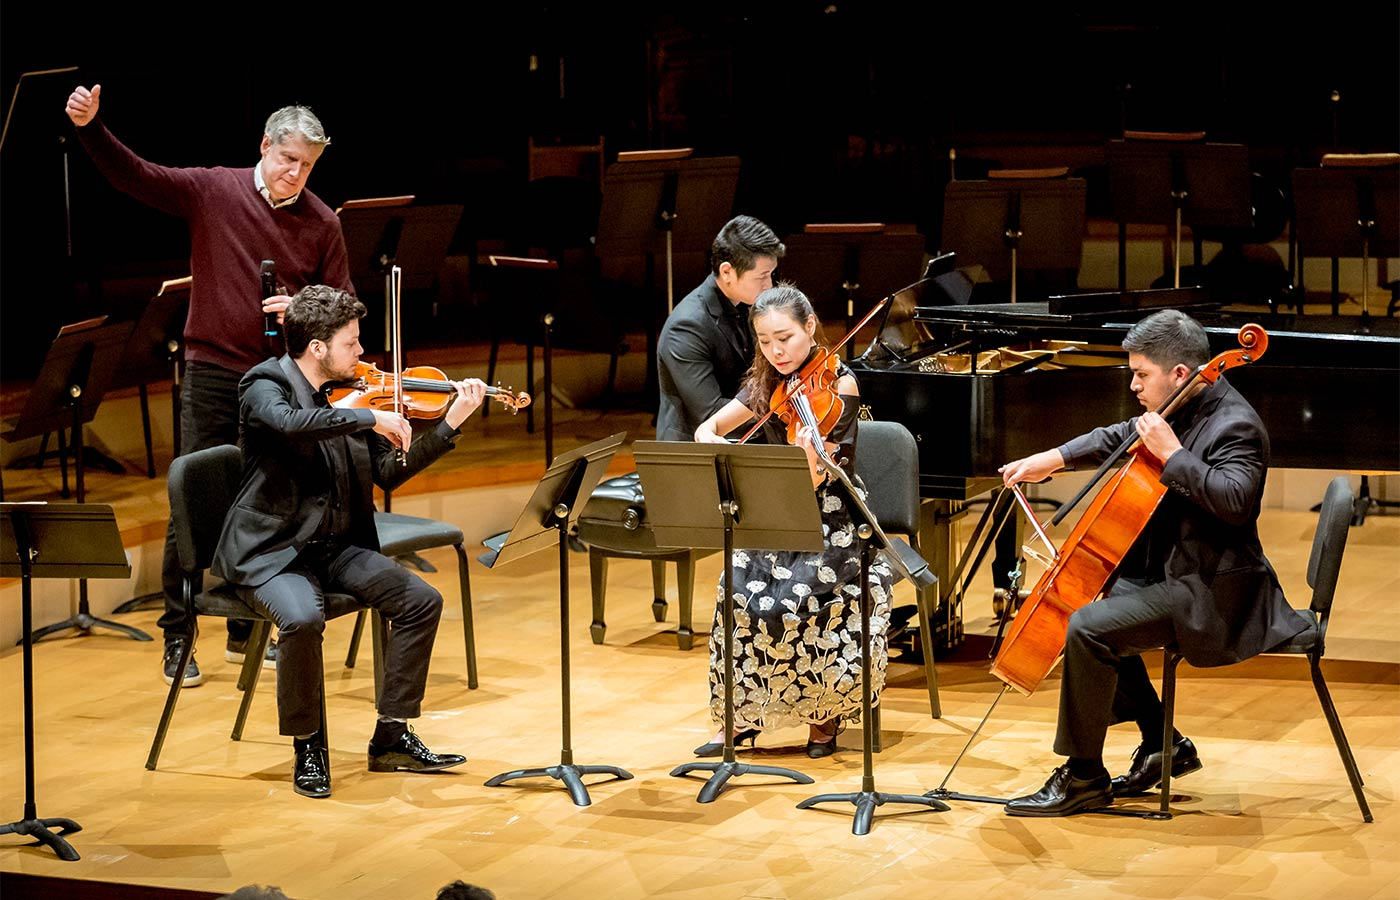 Photo of Michael Stern with a student chamber music group on stage in Helzberg Hall